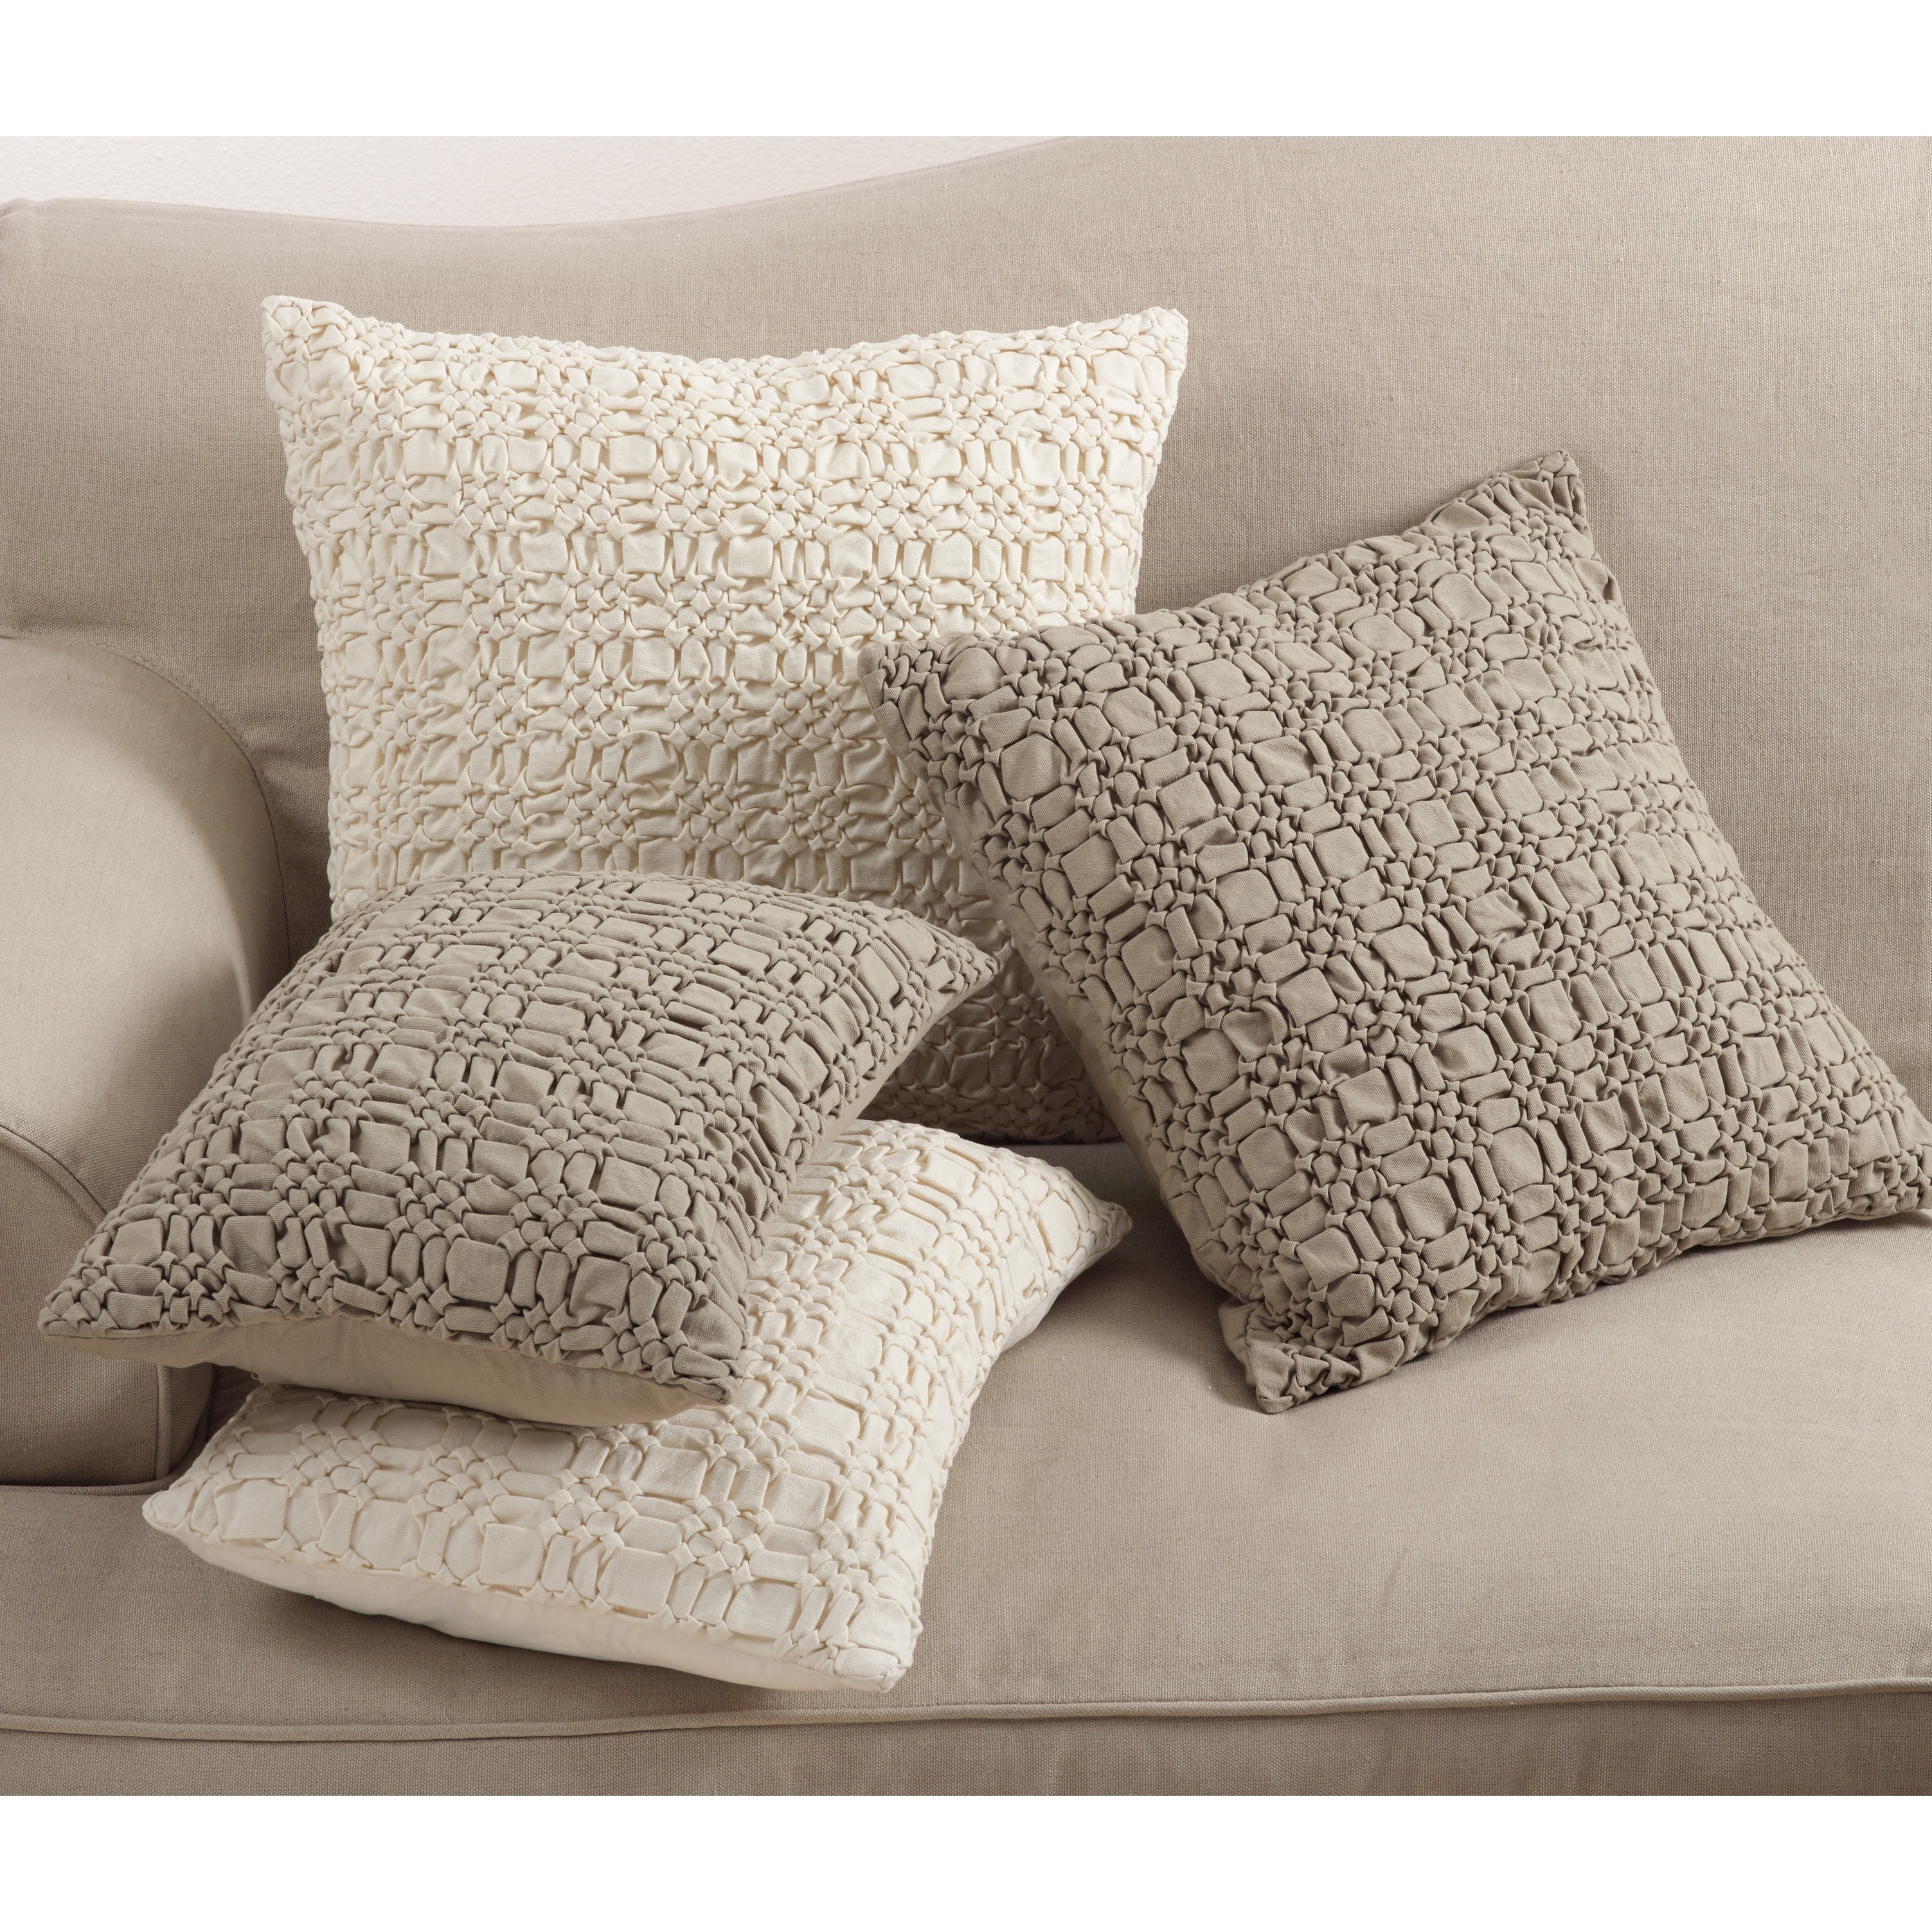 Brisbane Collection Smocked Design Down Filled Cotton Throw Pillow Overstock 12114941 14 X 20 Ivory